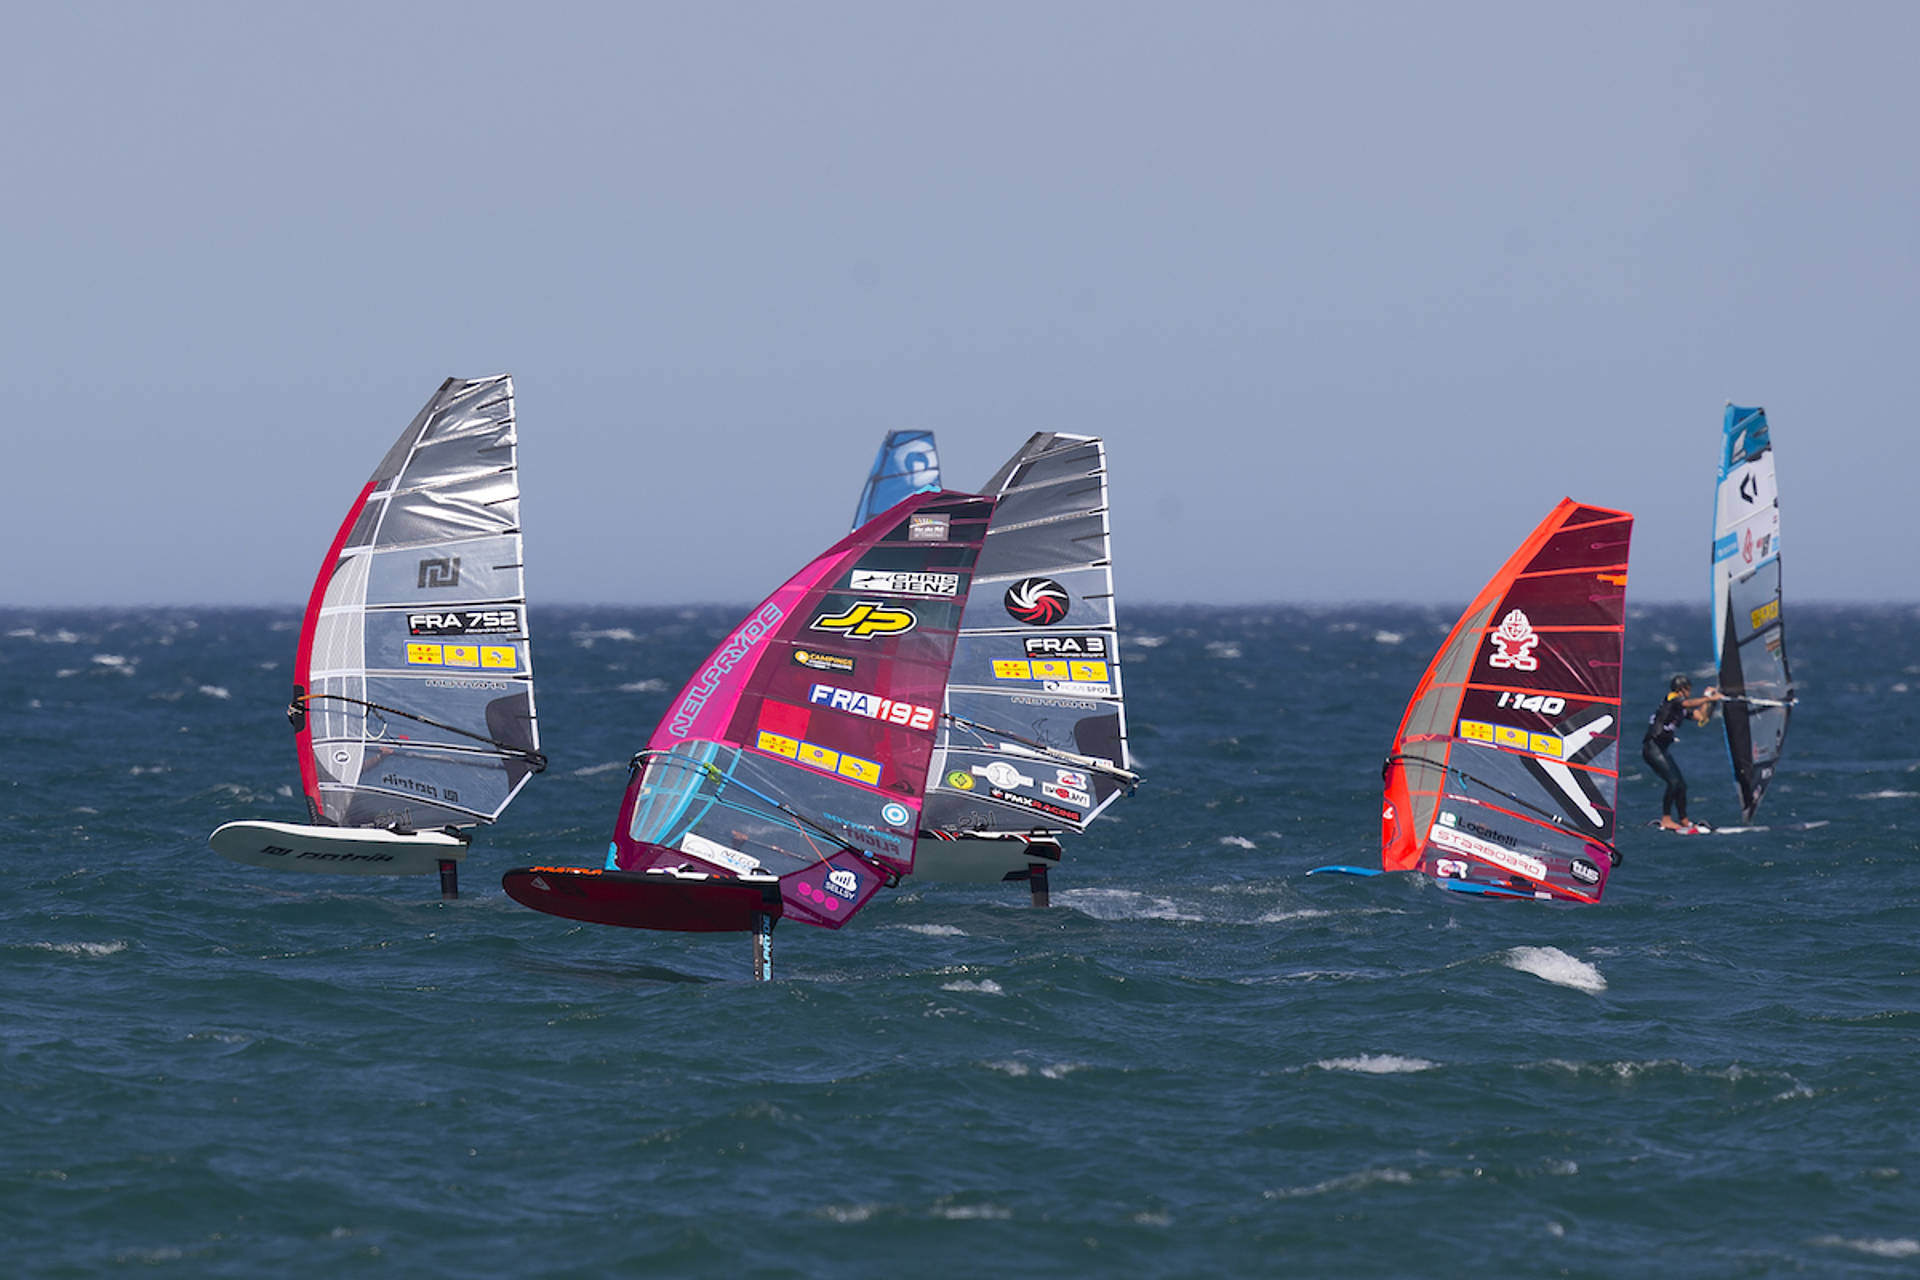 PWA WORLD WINDSURFING TOUR: Foil Slalom